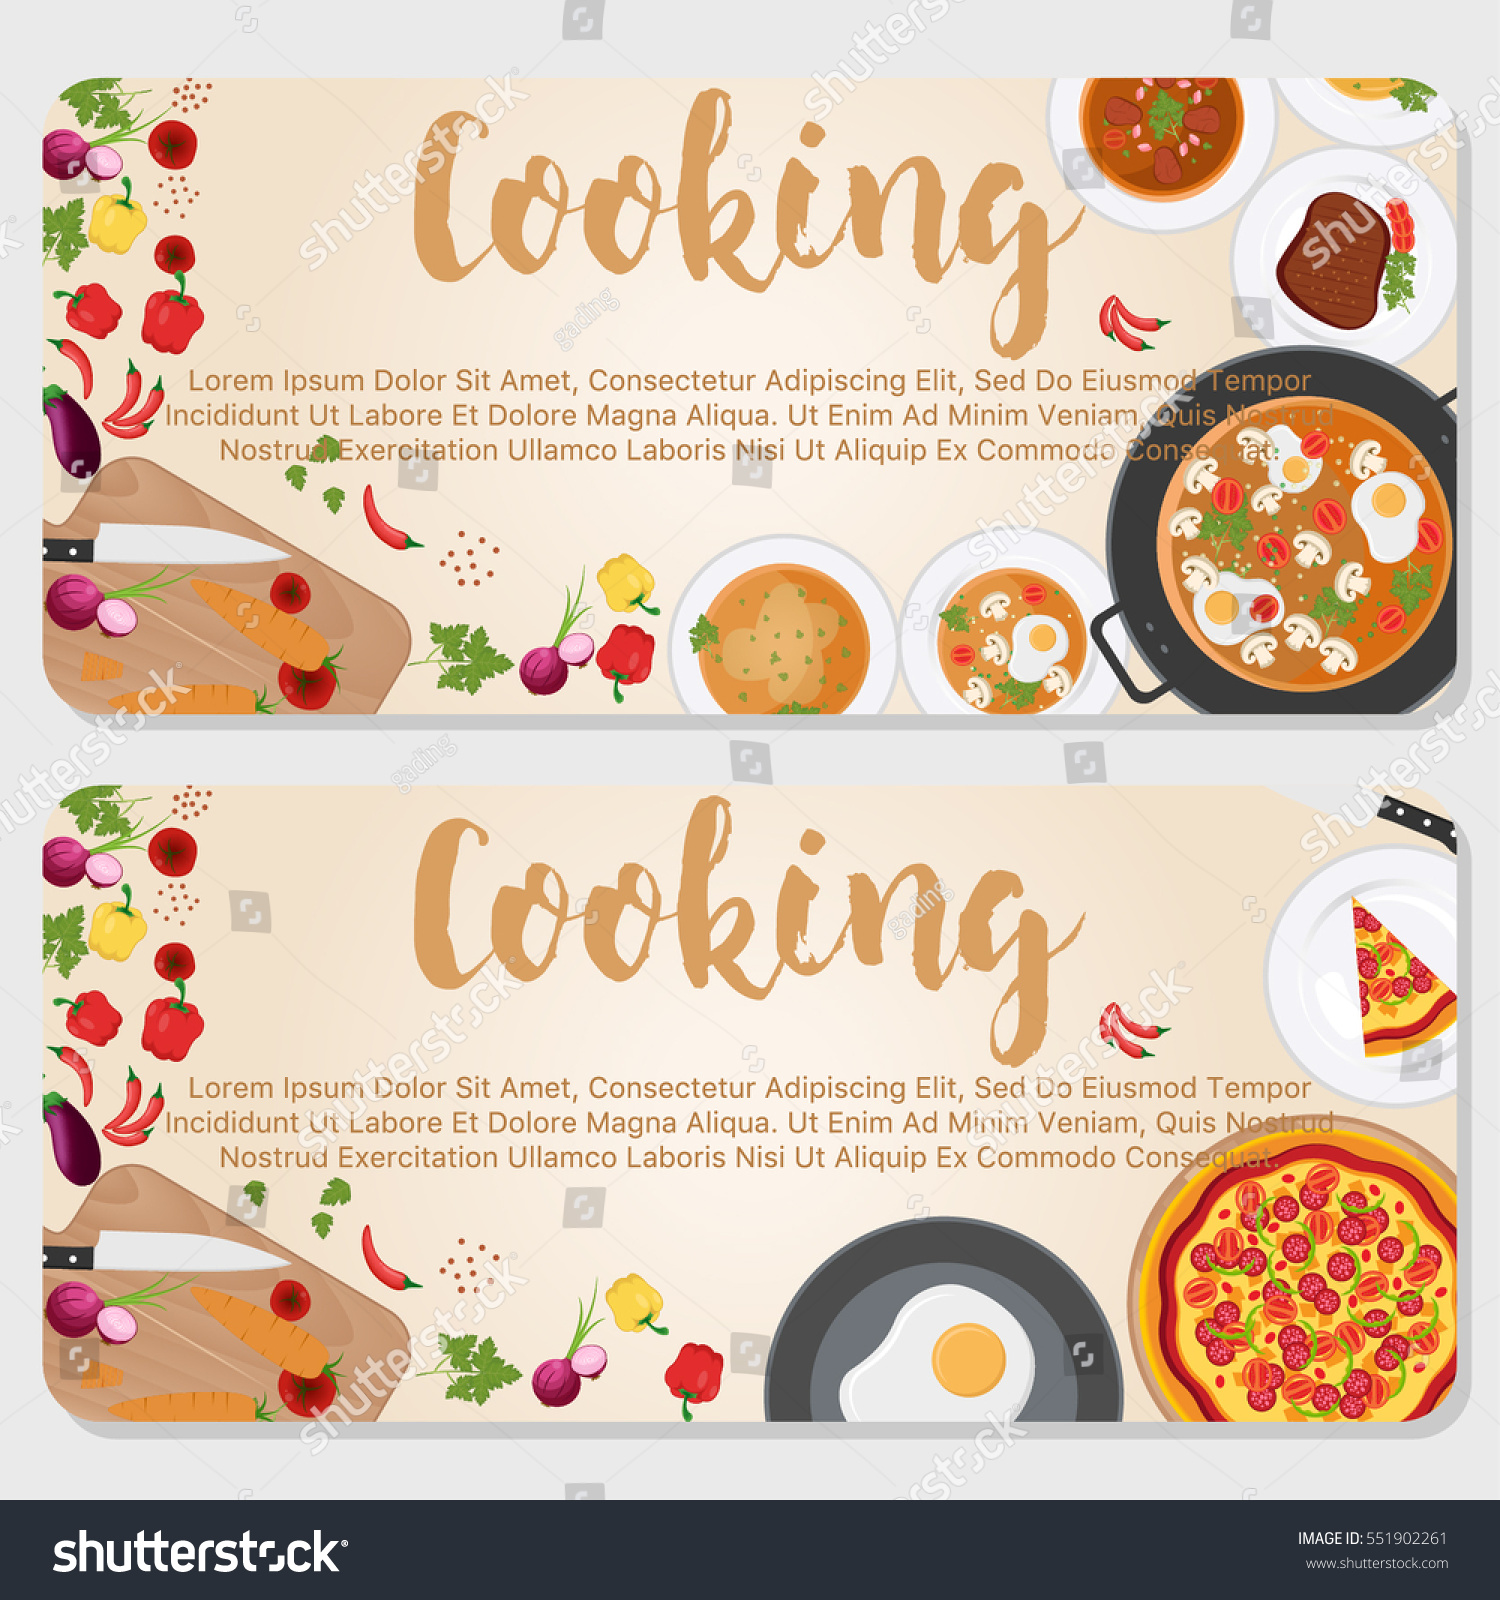 Cooking Banner Design Template Flayer Design Stock Vector Royalty Free 551902261